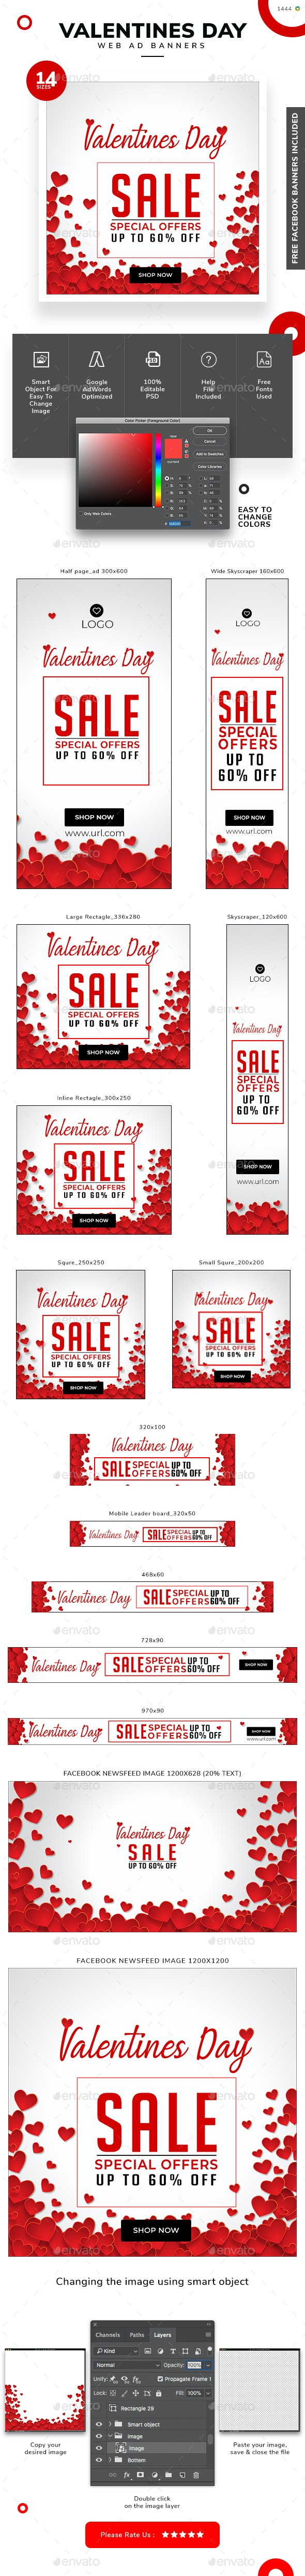 Valentines Day Sale Web Banner Set - Banners & Ads Web Elements